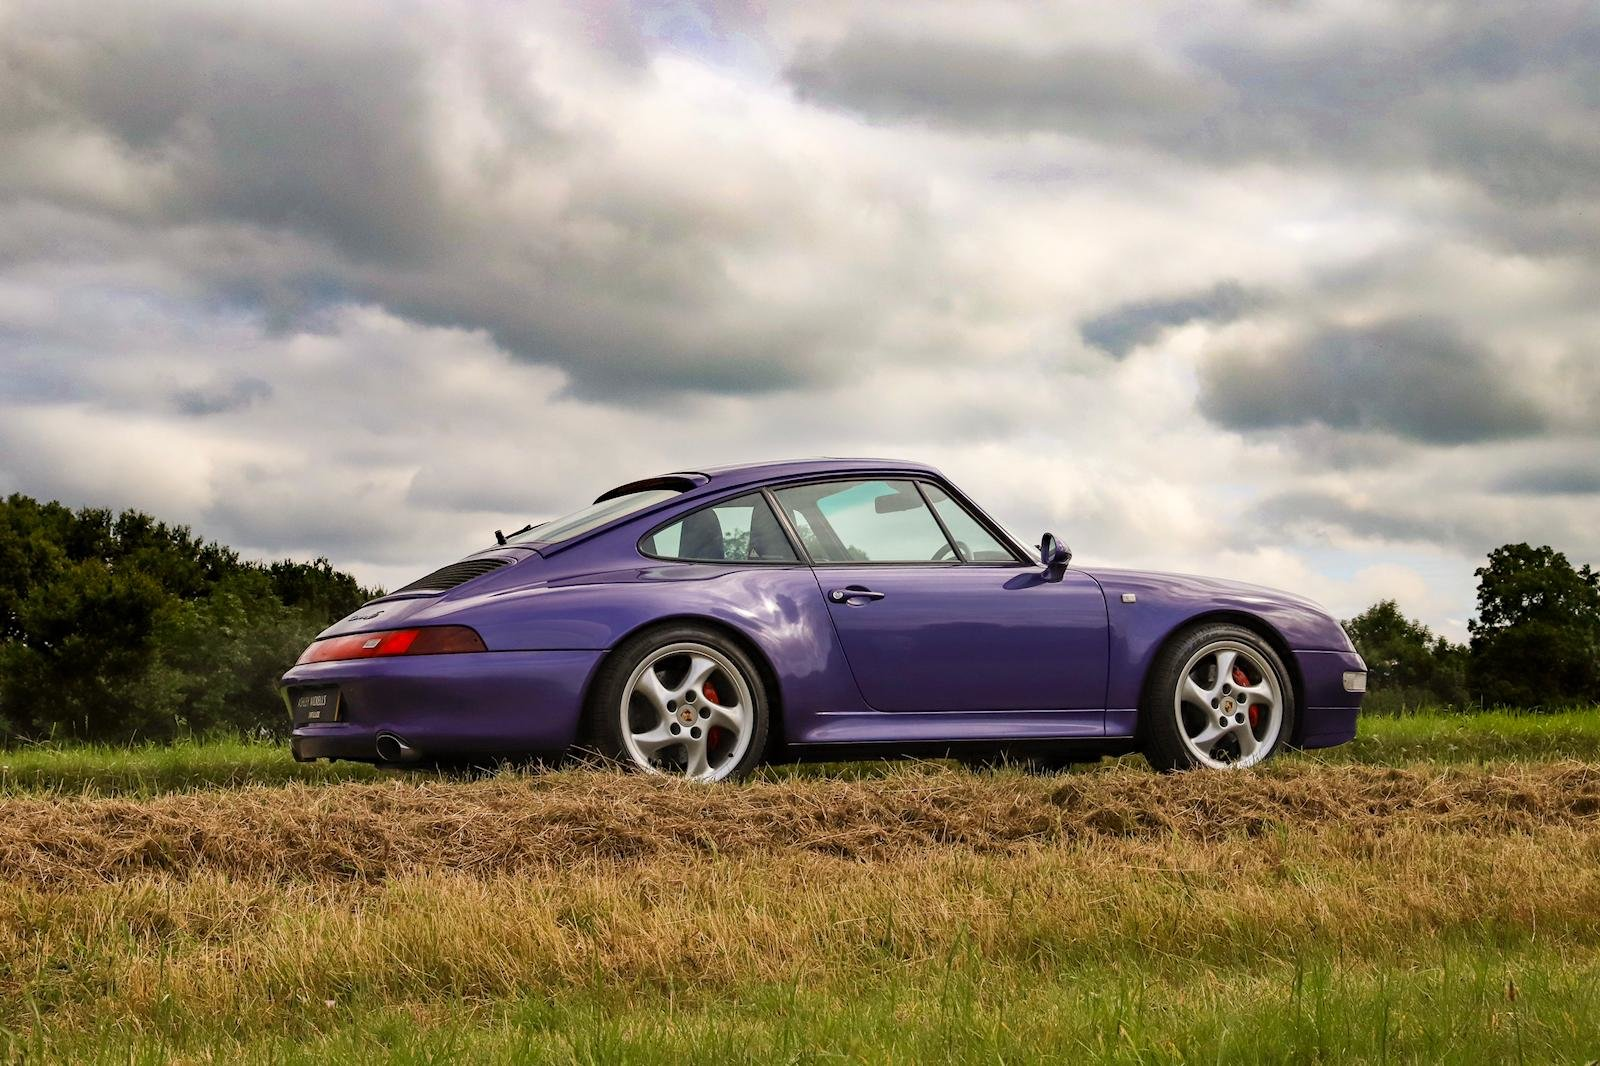 1998 RARE 993 LOW MILEAGE MANUAL C 4S - SPECTACULAR VIOLET BLUE   For Sale (picture 2 of 6)